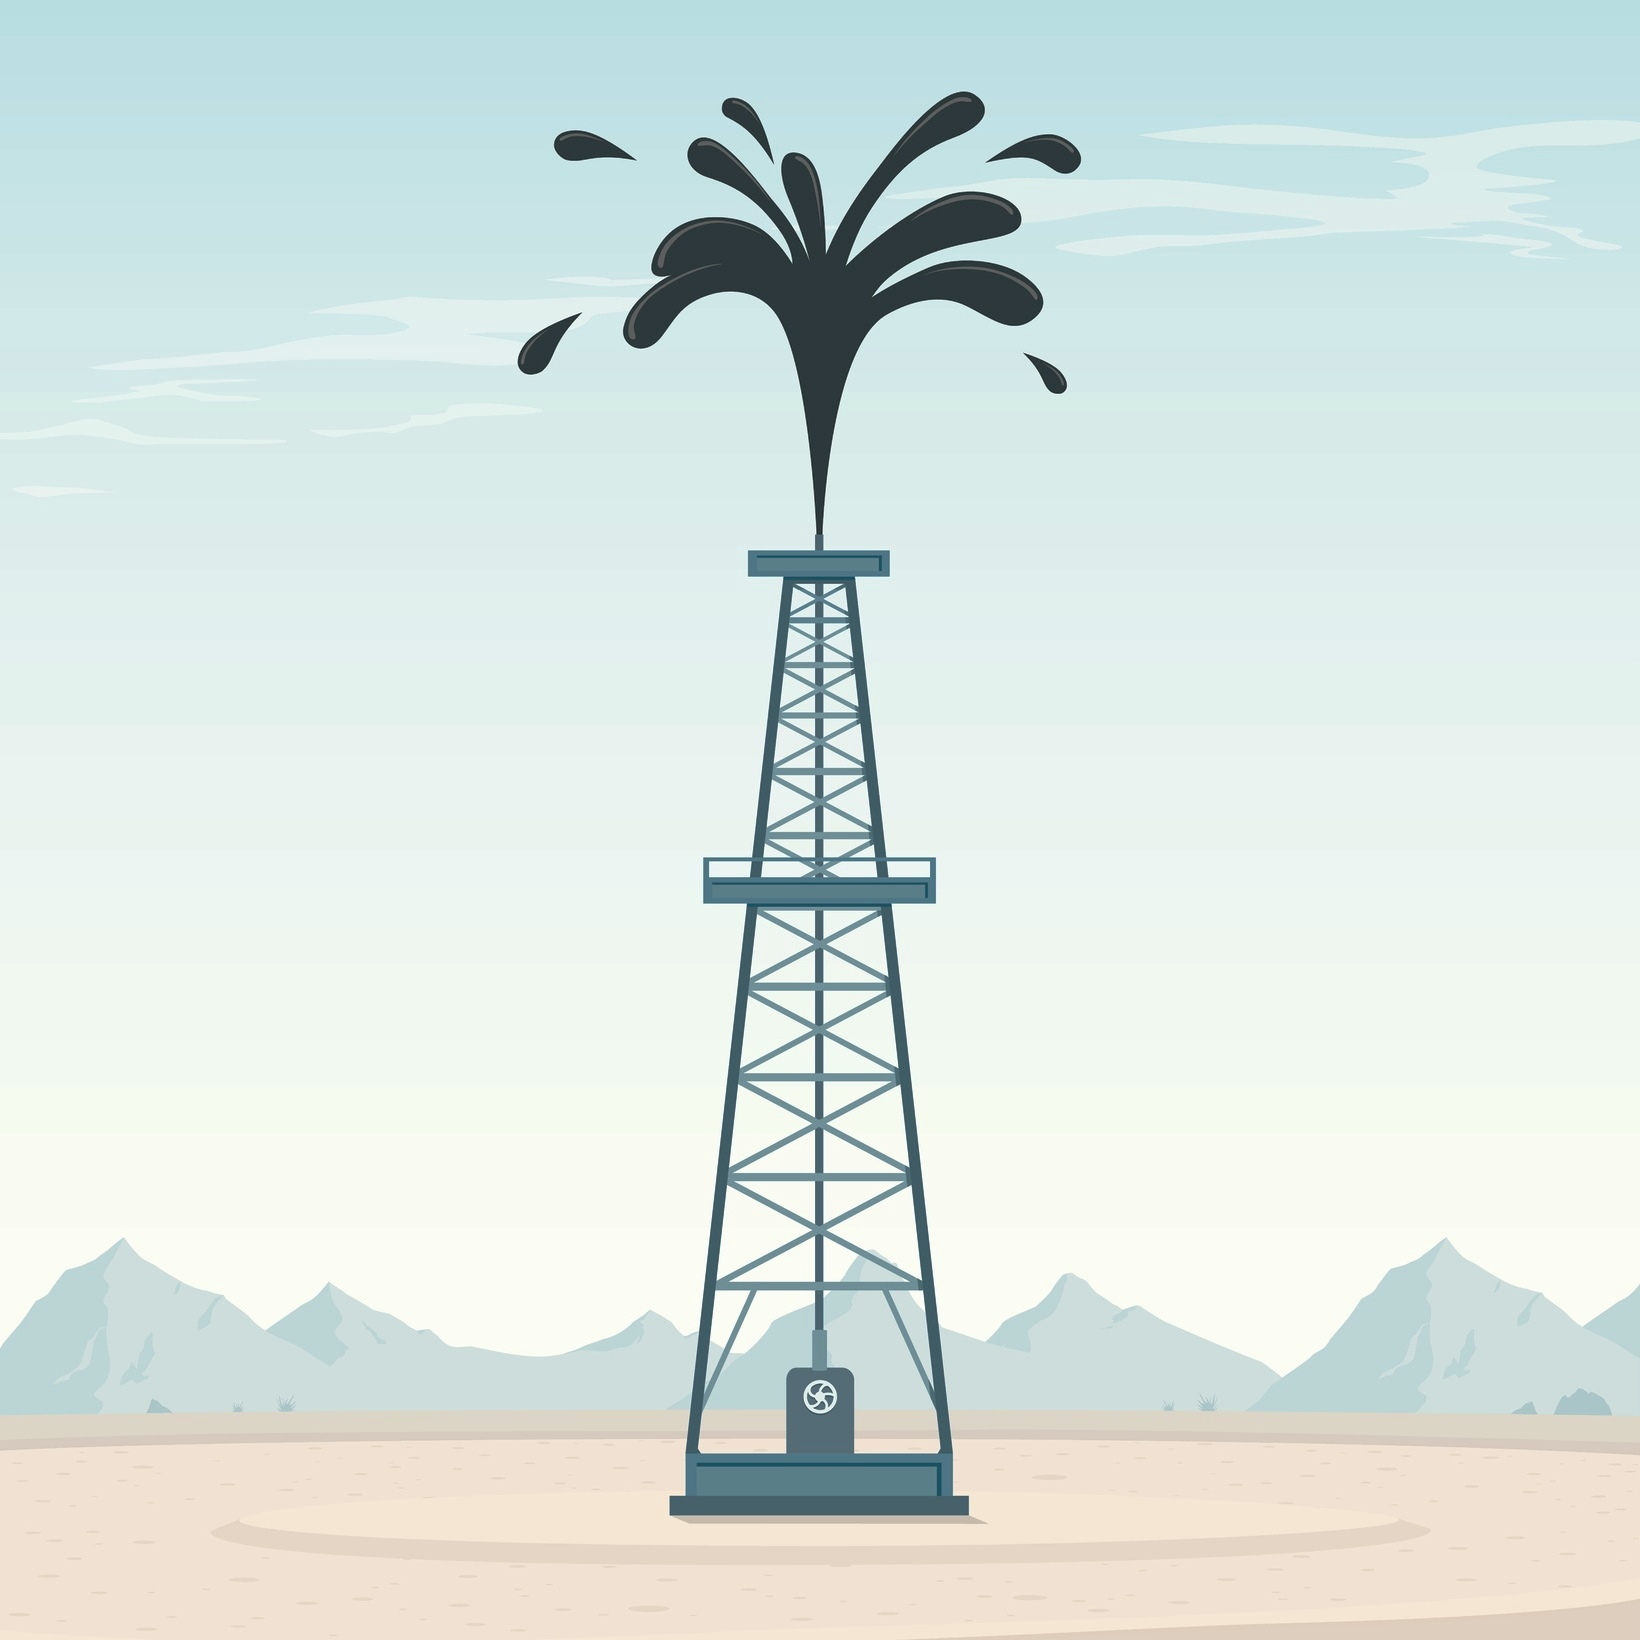 5 Permian Basin Stocks to Buy for $66 Oil This Year | 24/7